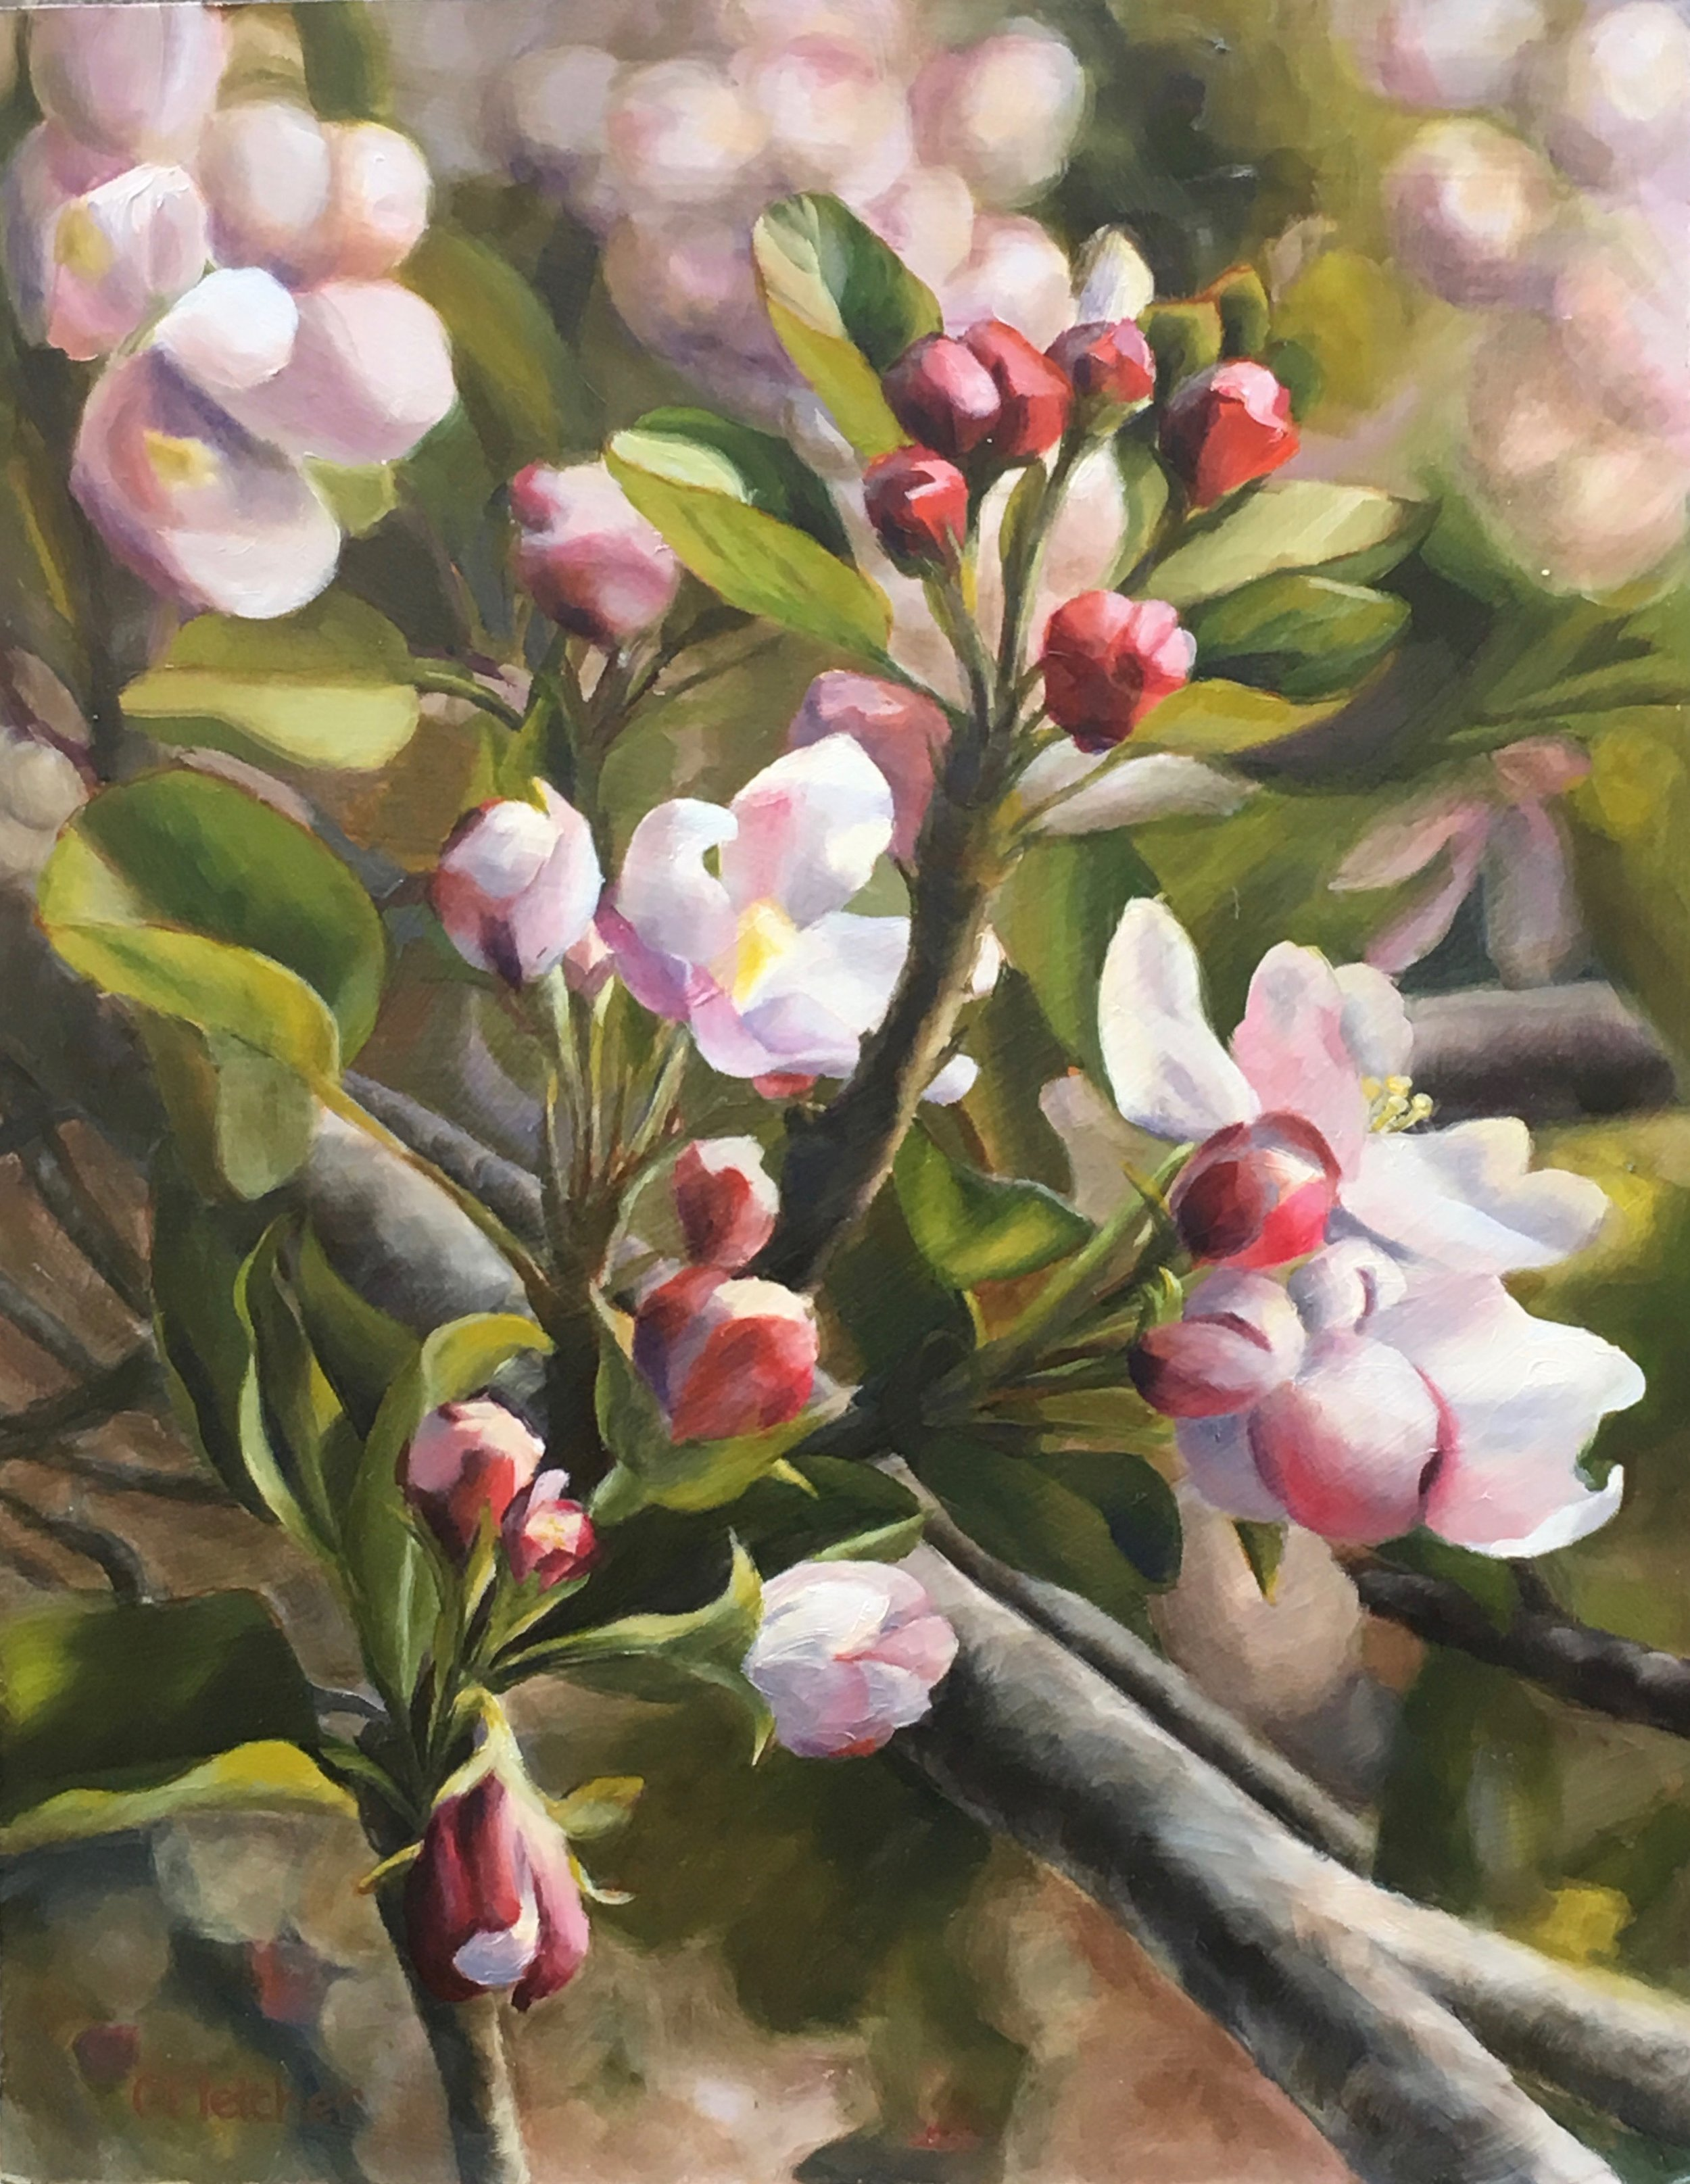 Spring in Julian  - 11x14 - Oil on panel